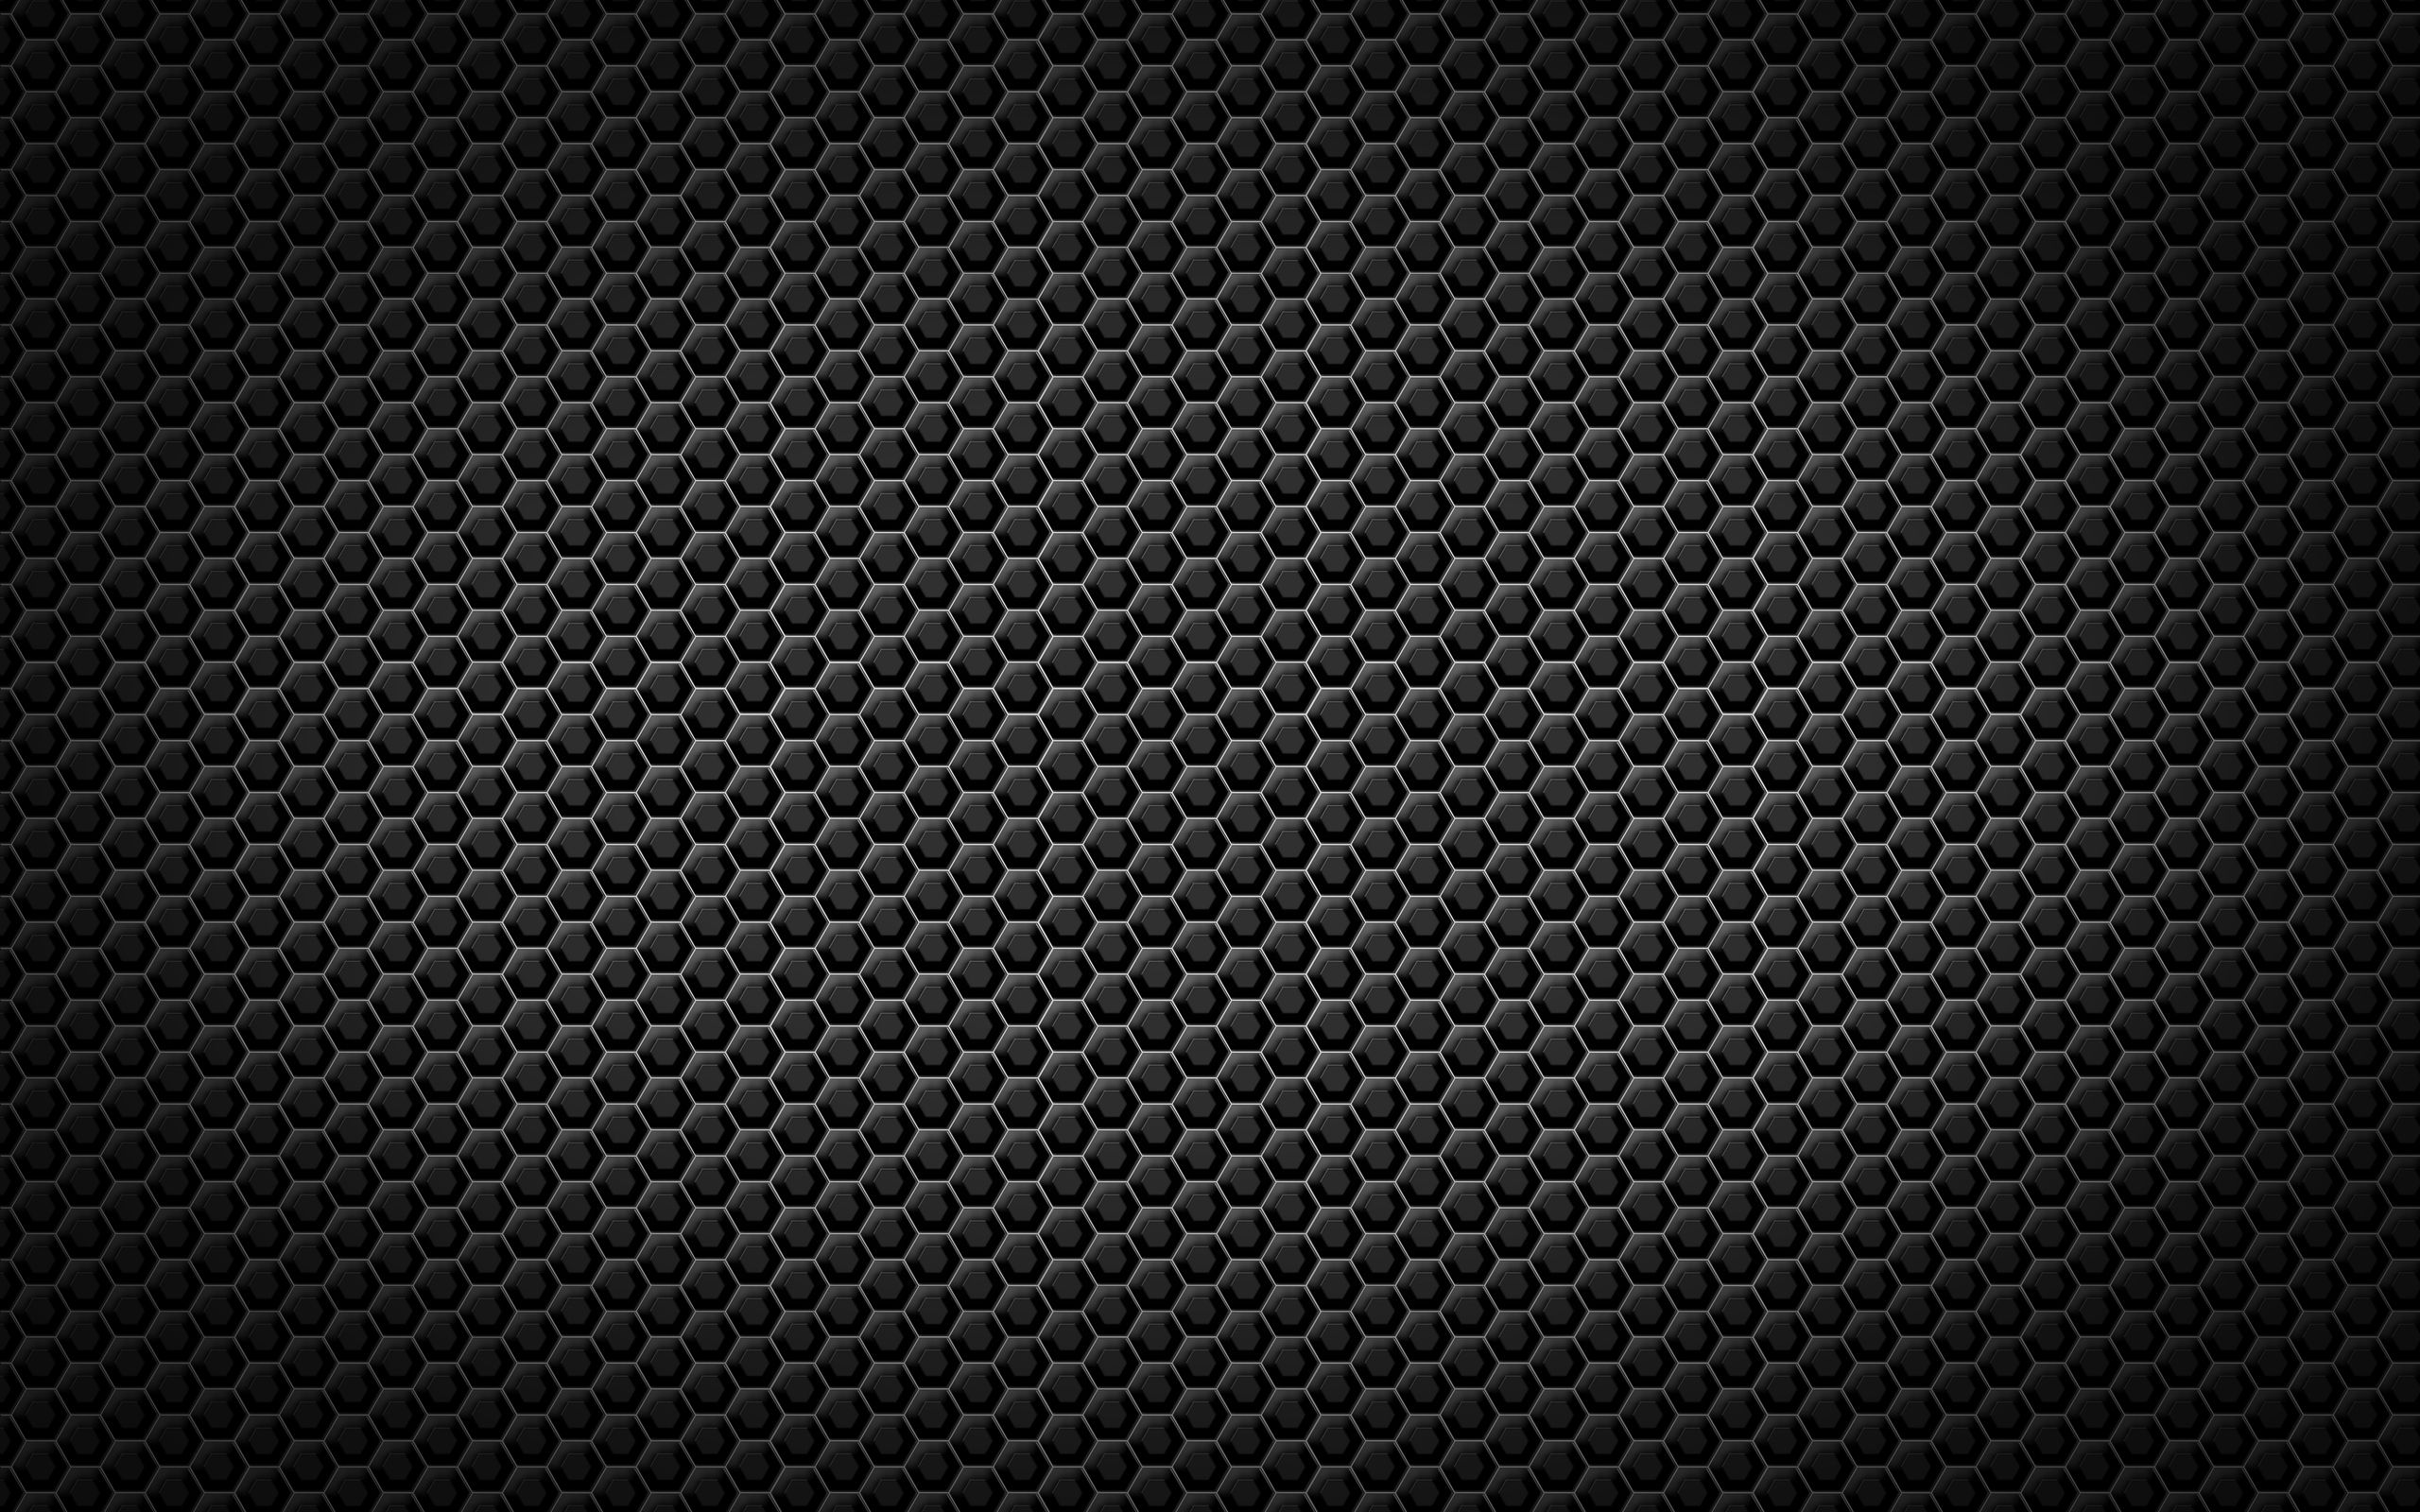 Black wallpaper backgrounds 2n 1297 wallpaper for Schwarze mustertapete